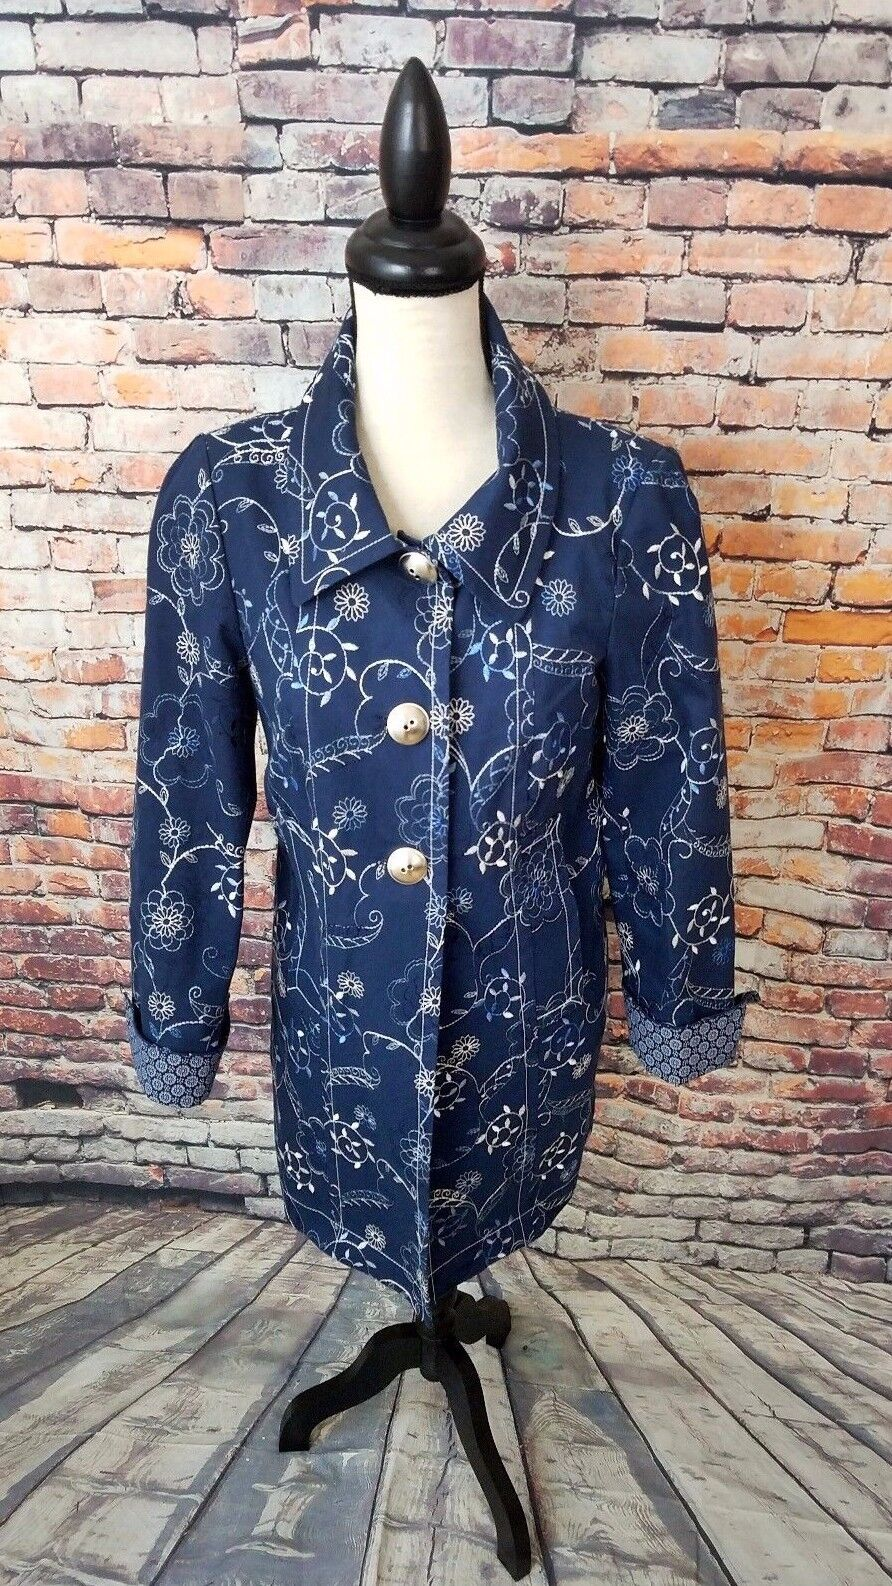 NWOT W Worth Women's Navy FLIP CUFFS Floral EMBROIDERY Cotton Trench Coat Sz PP